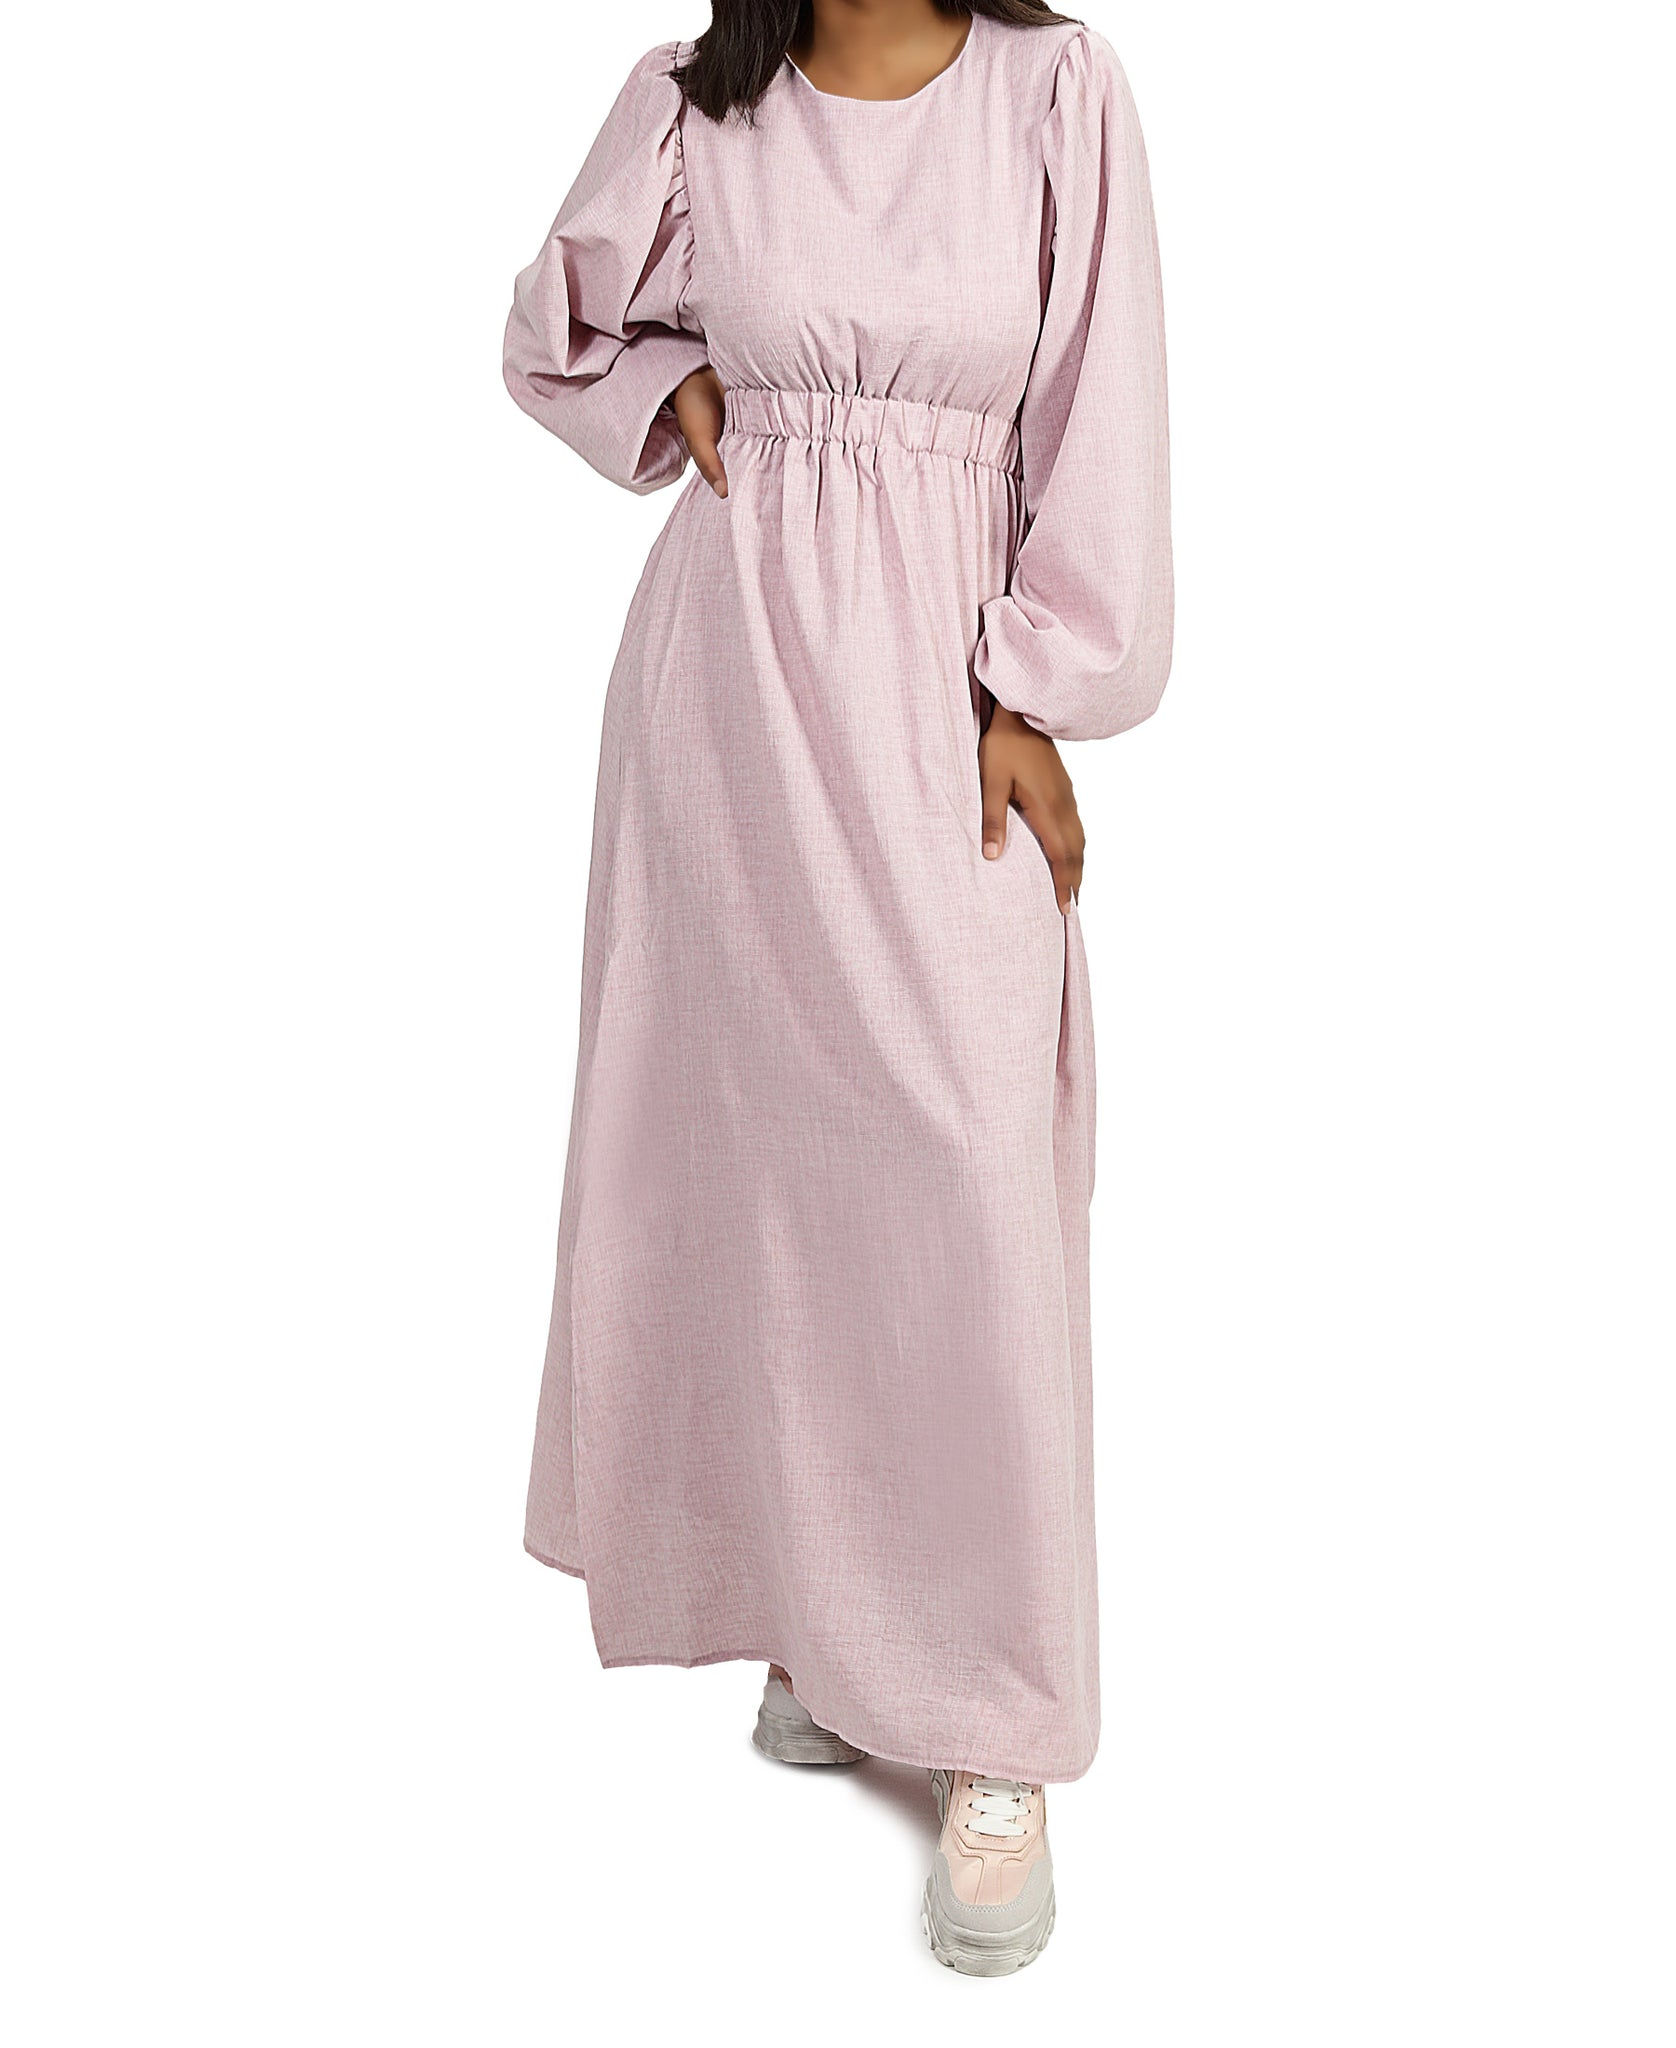 Long Sleeve Maxi Dress - Pink